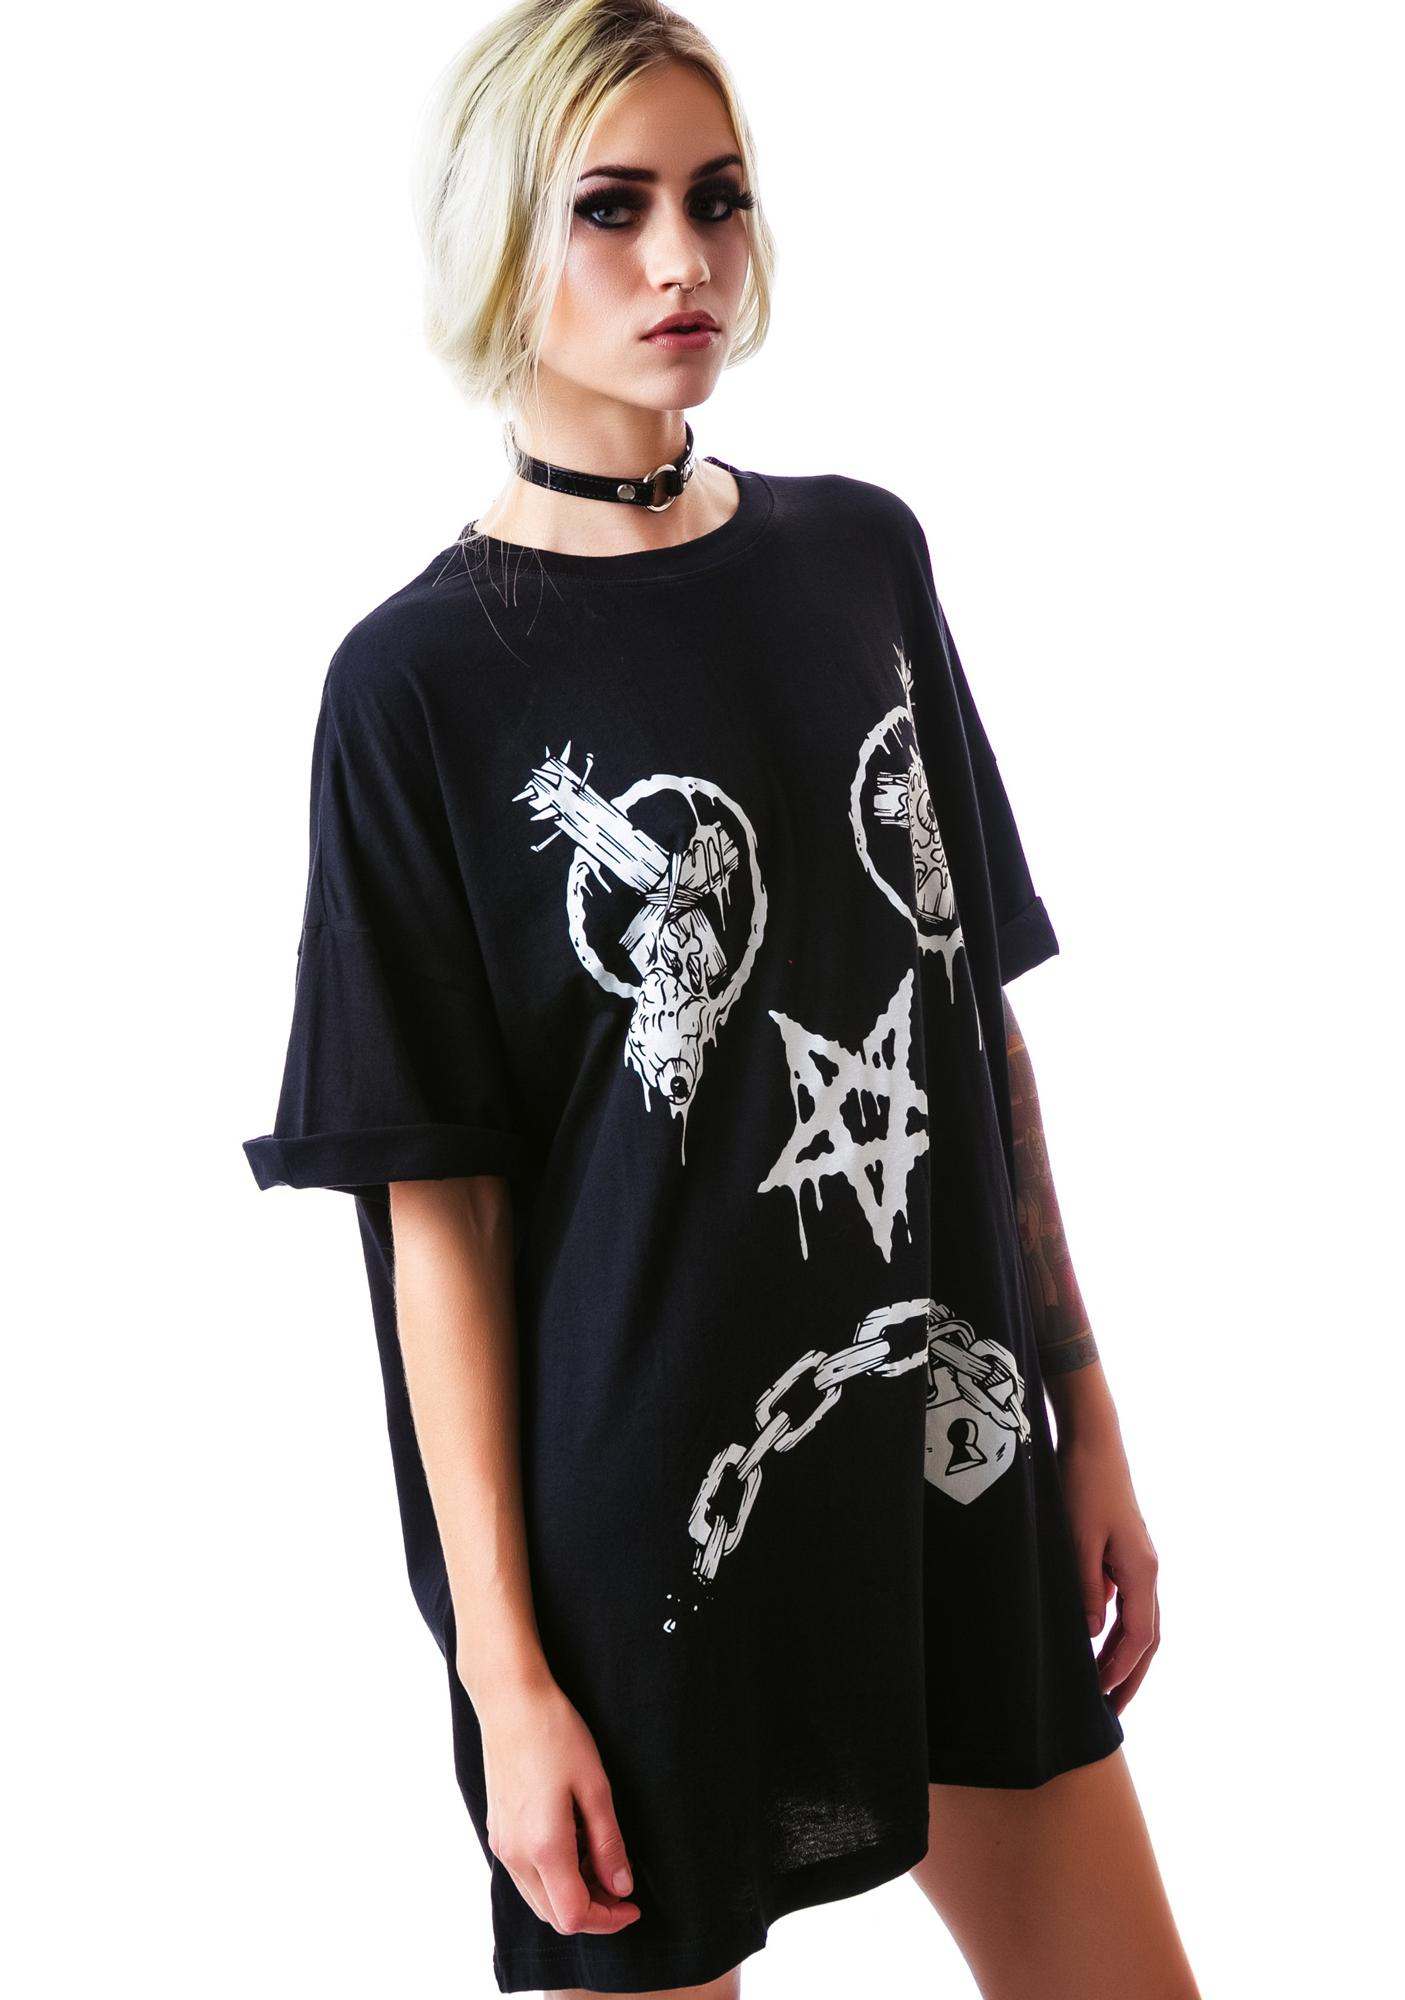 Long Clothing x Mishka Vex Oversize Tee